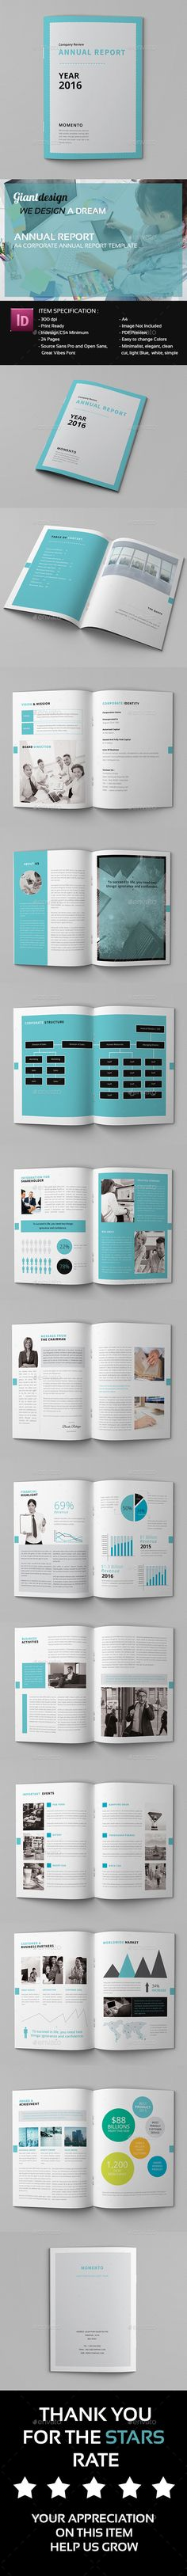 Annual Report Corporate Brochures 34 Pages